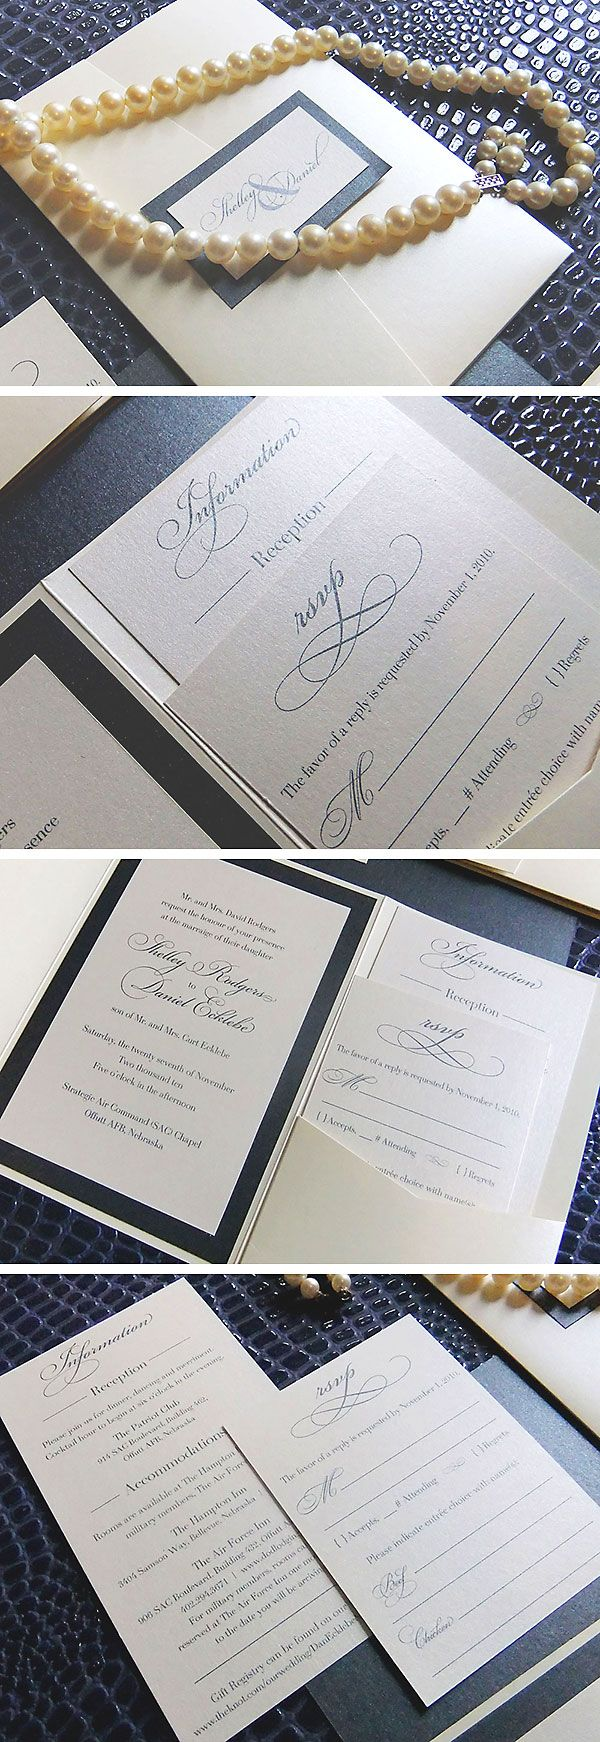 Traditional Wedding Invitations from Emily Edson Design https://www.etsy.com/listing/66011394/the-jessica-pocketfold-invitation-25?ref=shop_home_active Pocketfold Invites, Navy and Pearl Wedding, Elegant Wedding Invitations